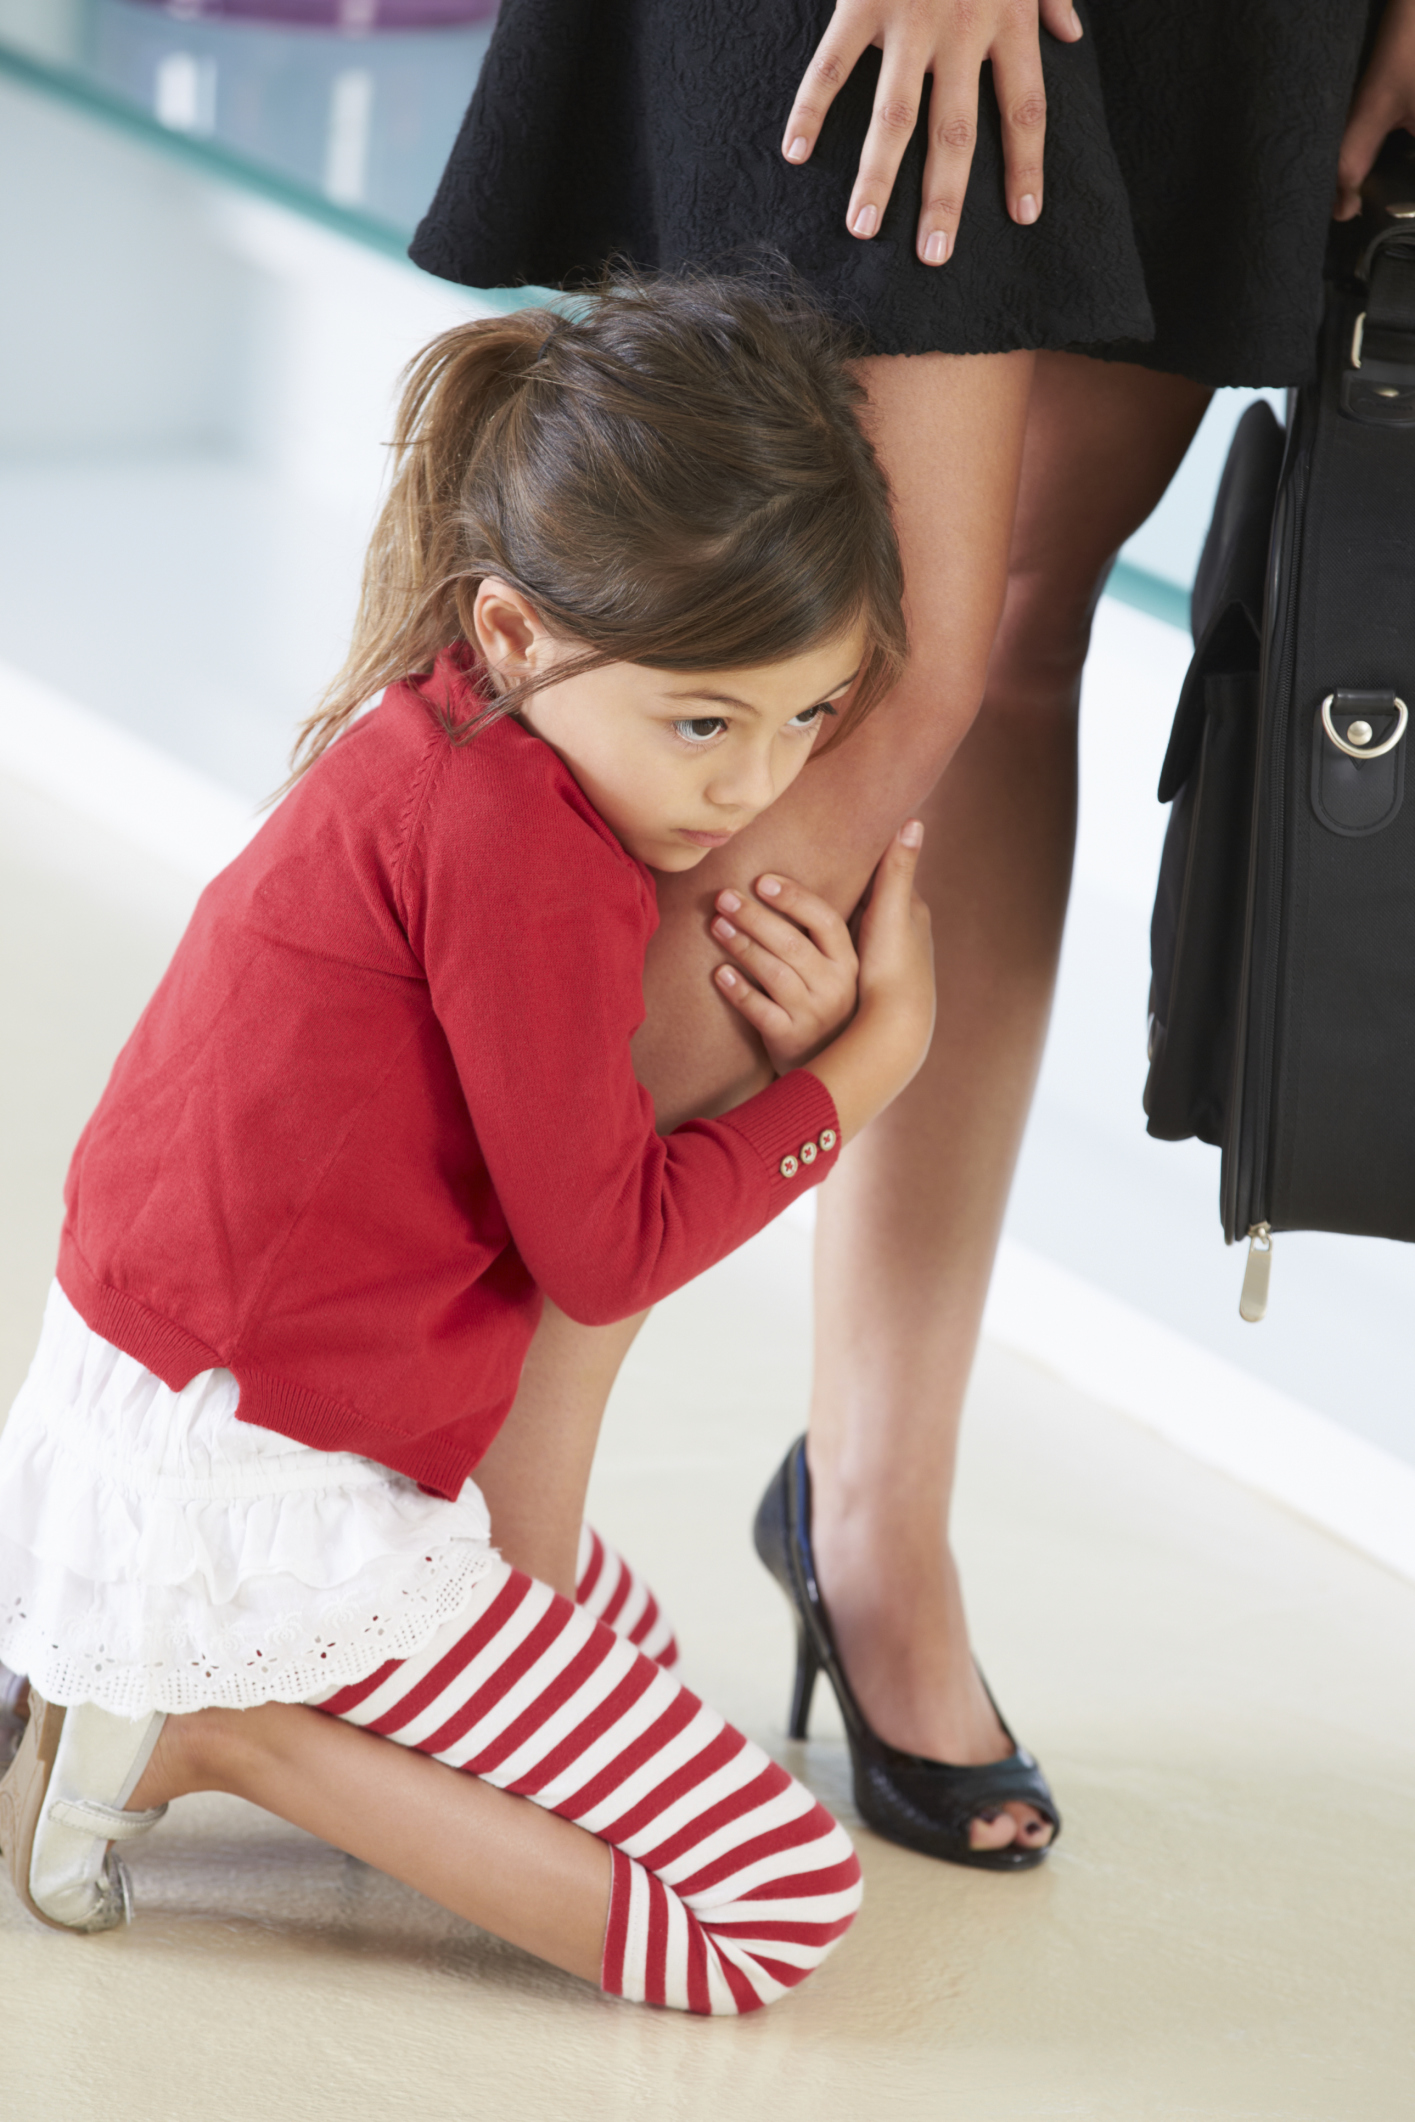 Parenting: The guilt felt by working moms